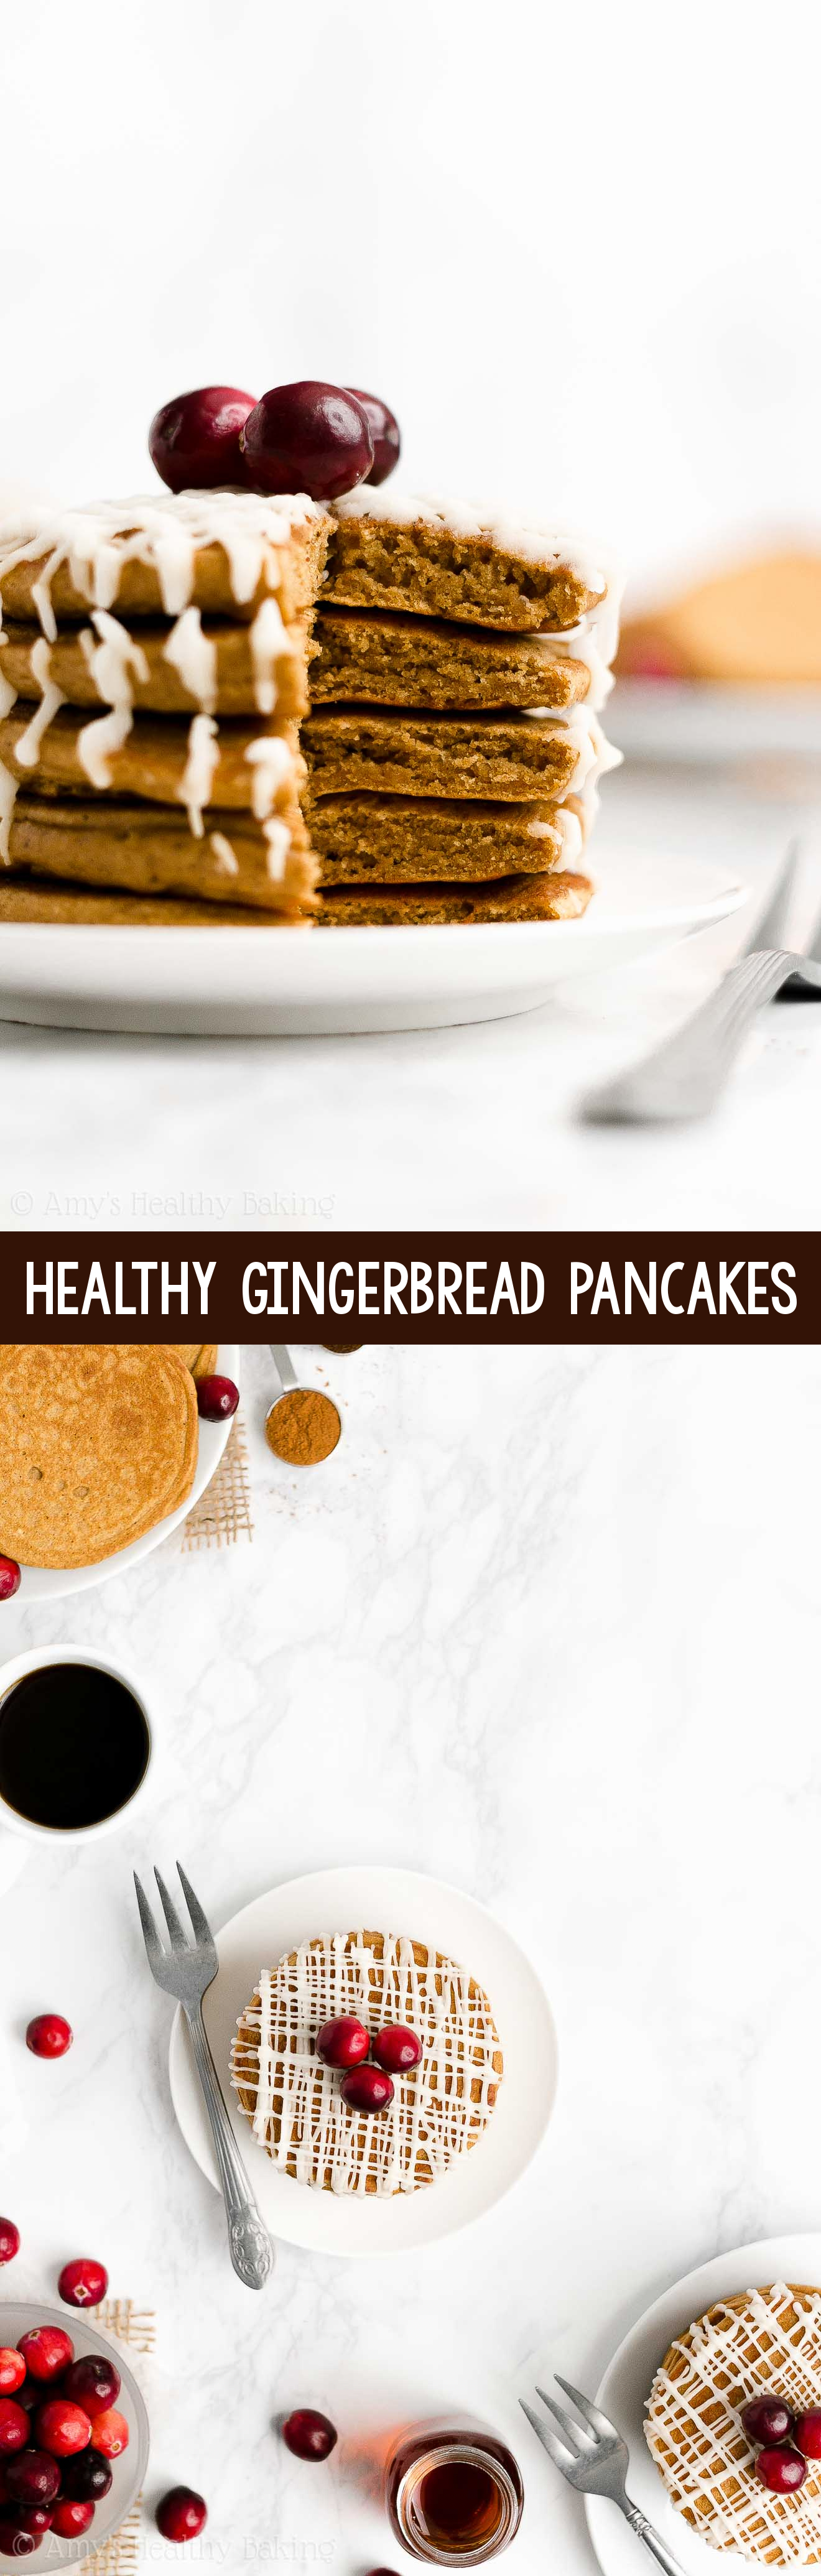 BEST Easy Healthy Fluffy Low Calorie Gingerbread Pancakes for Christmas Breakfast